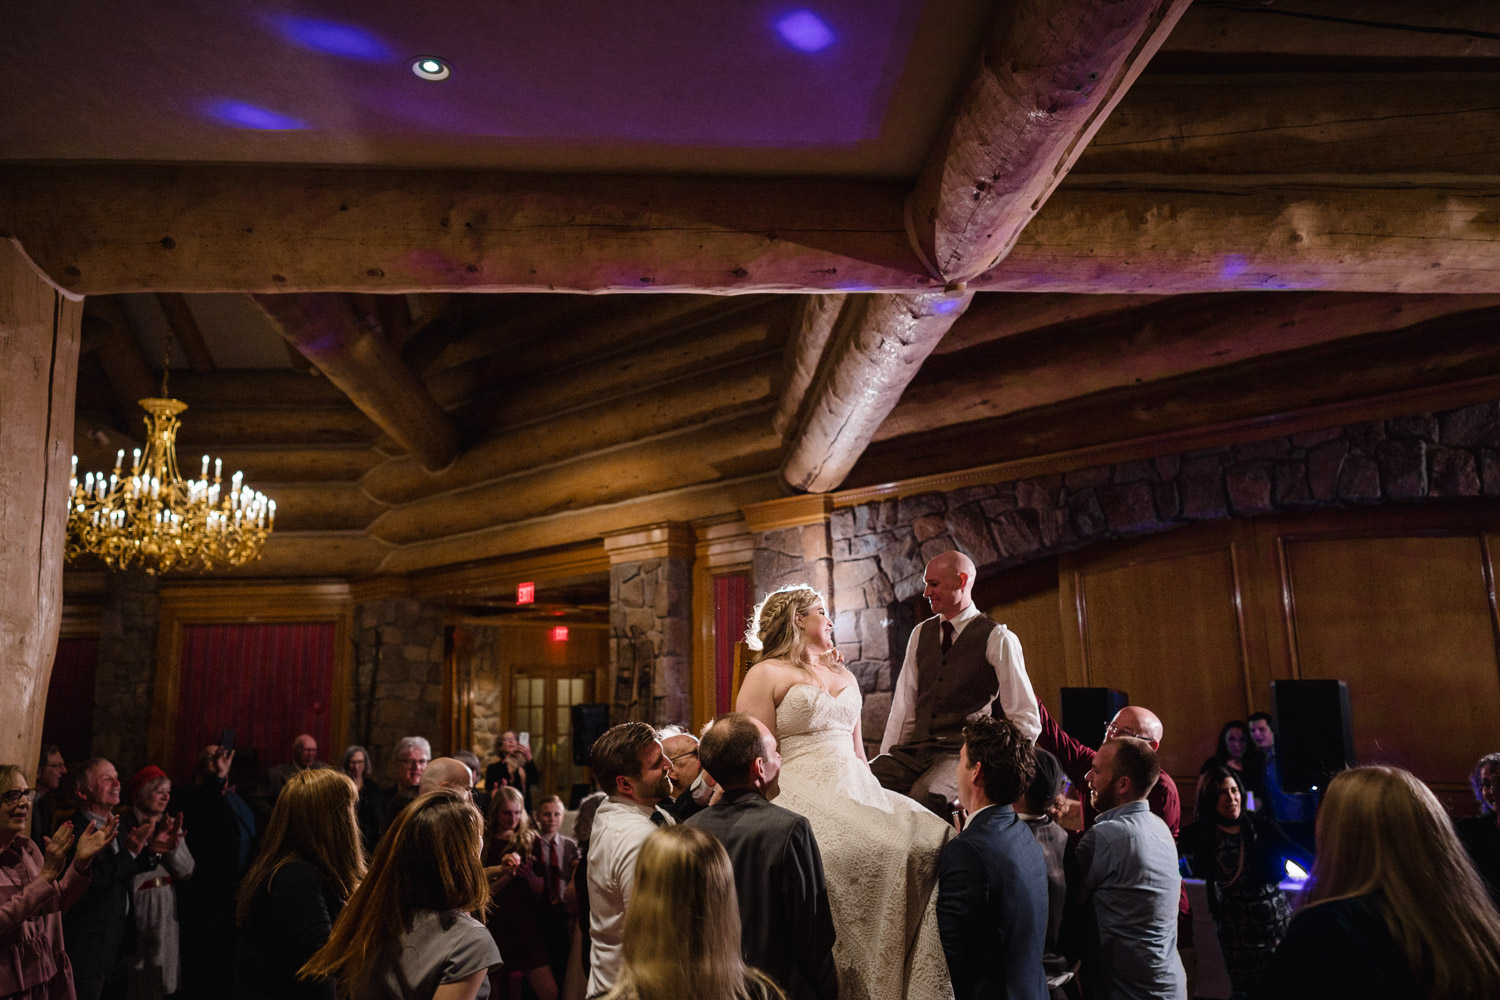 snowbasin resort wedding reception celebration